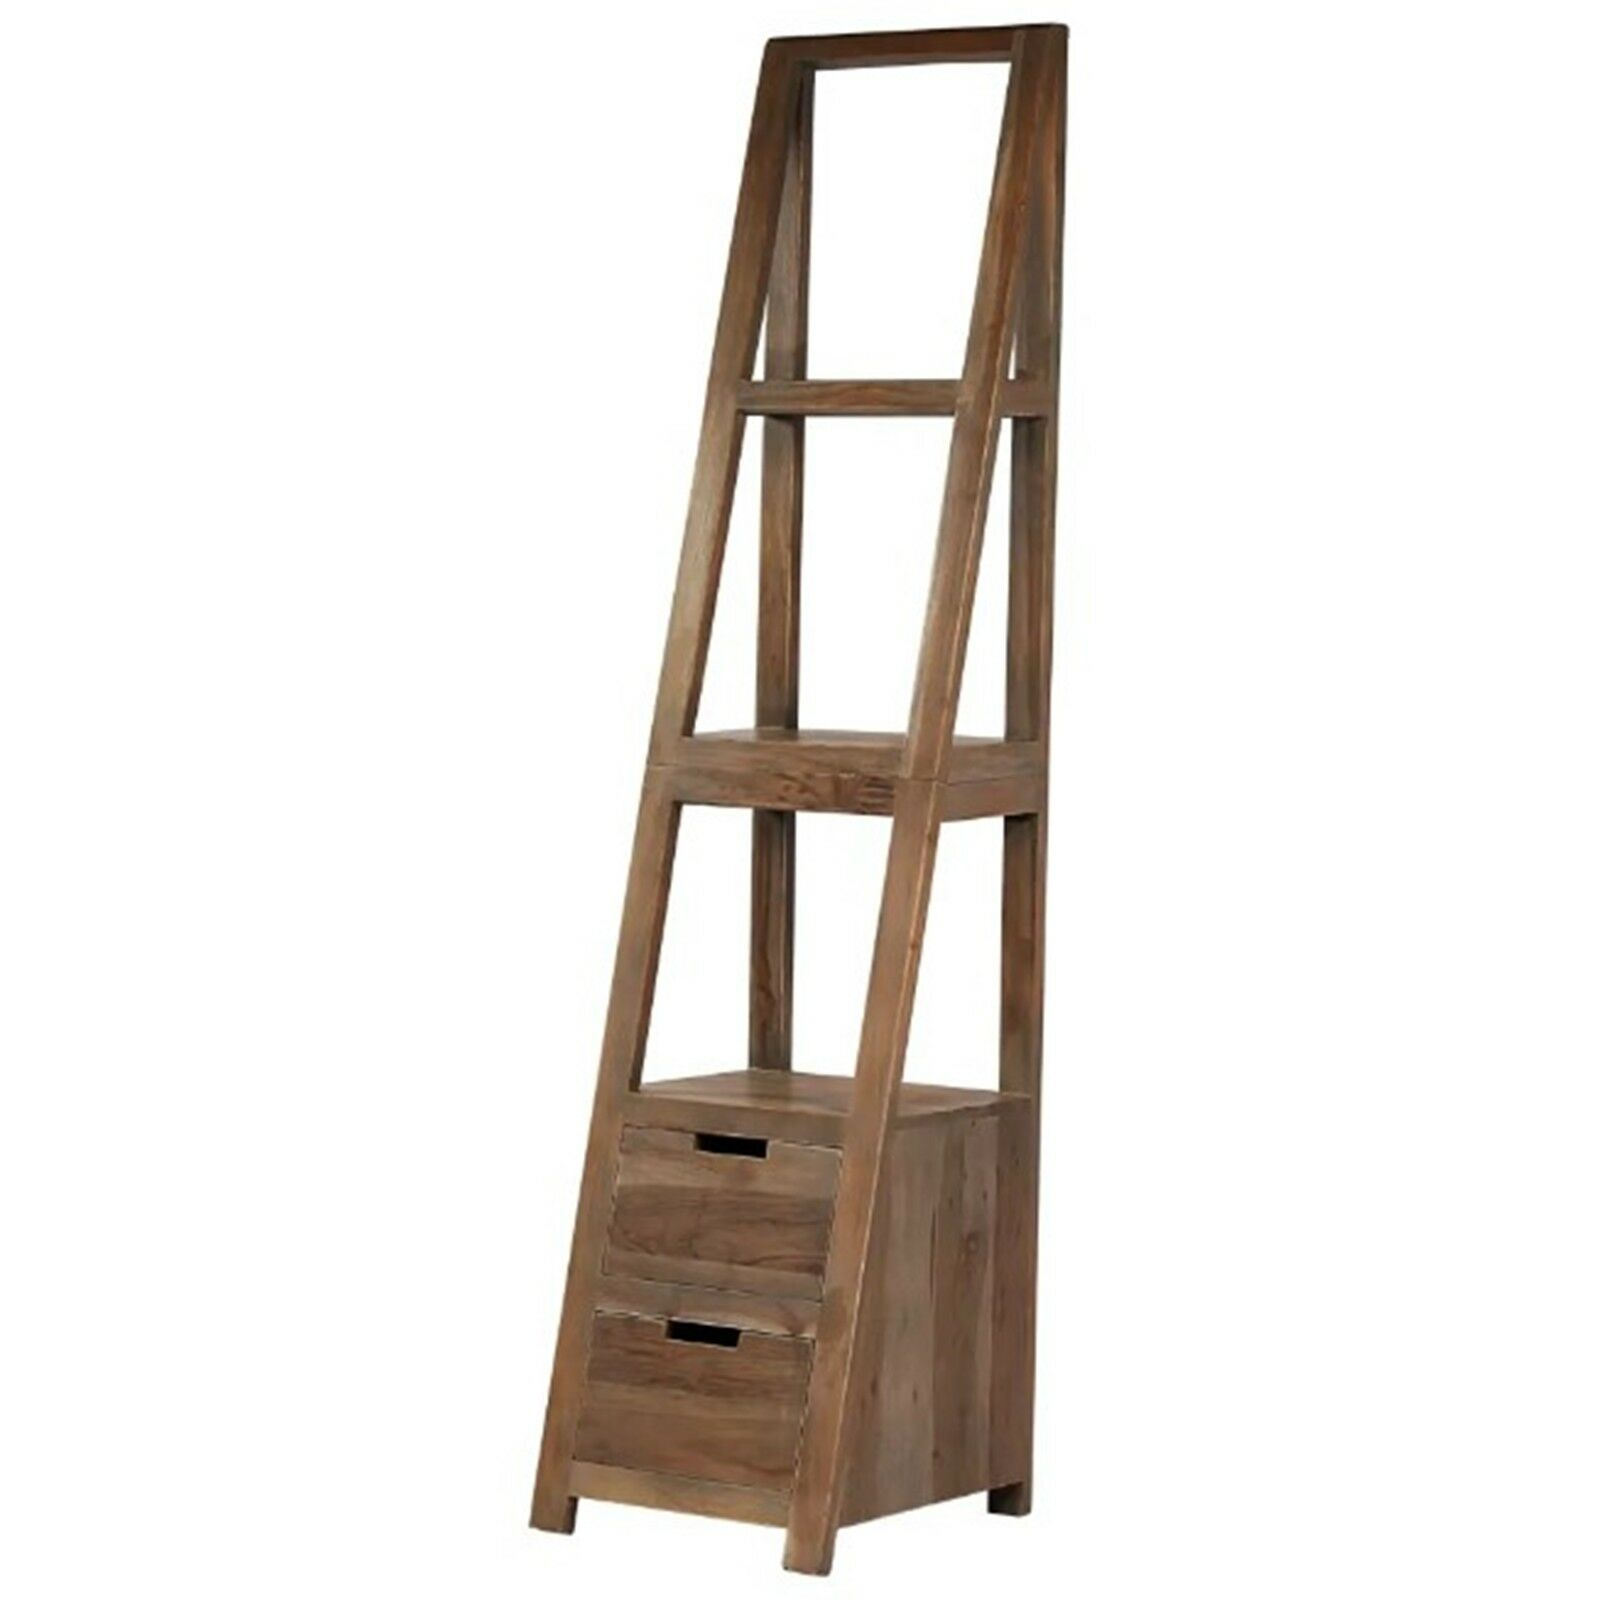 Details About Vintage Shelving Unit Ladder Style Bookcase Solid Wood Display Unit Home Storage